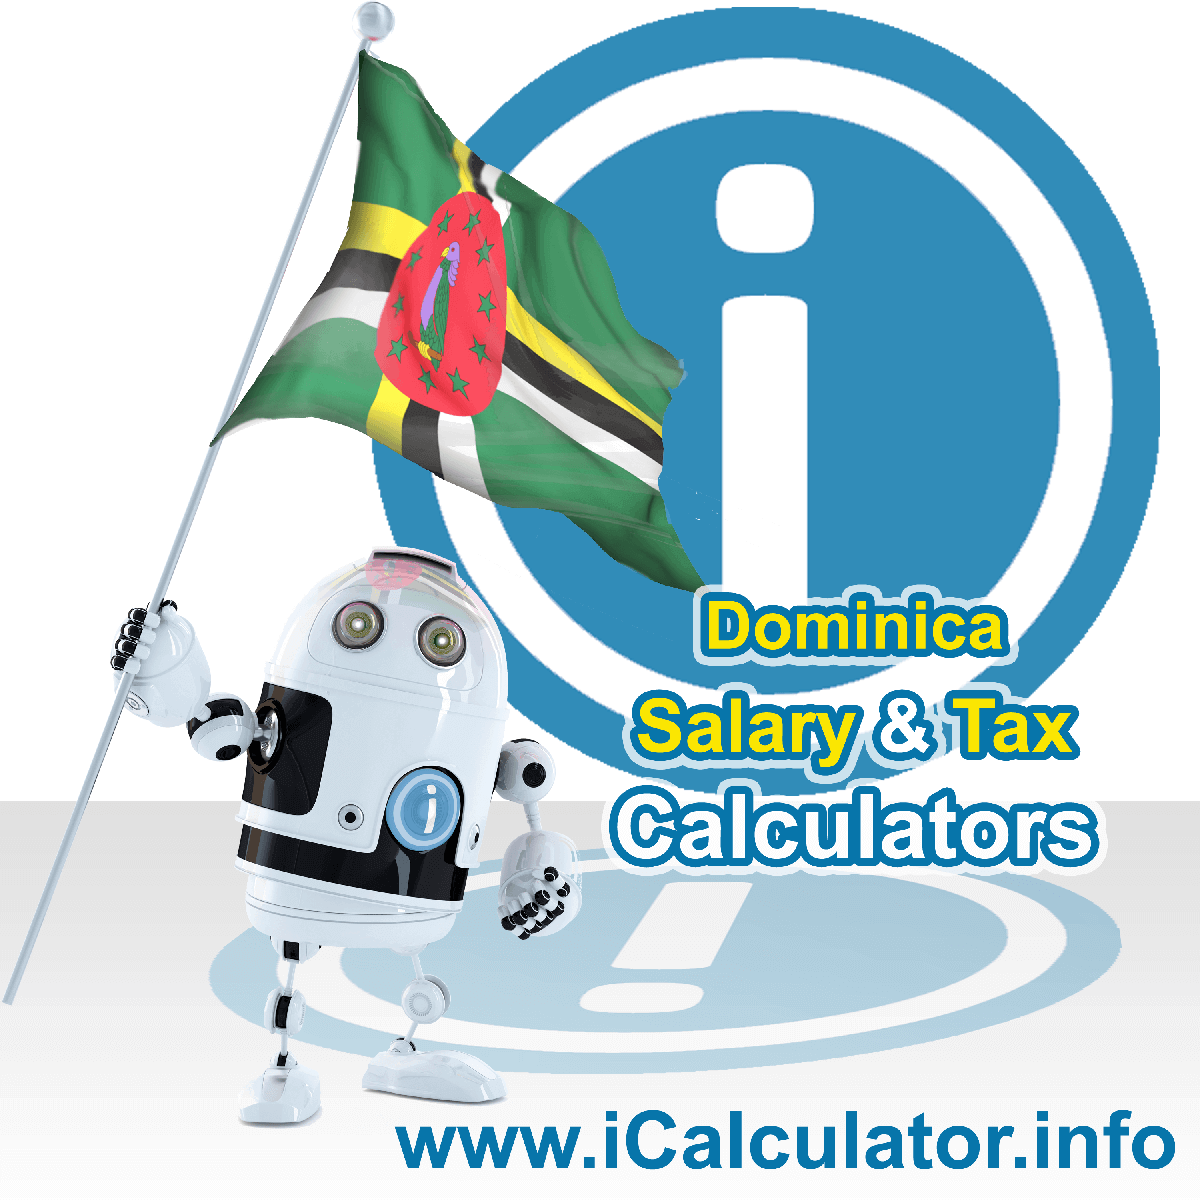 Dominica Tax Calculator. This image shows the Dominica flag and information relating to the tax formula for the Dominica Salary Calculator